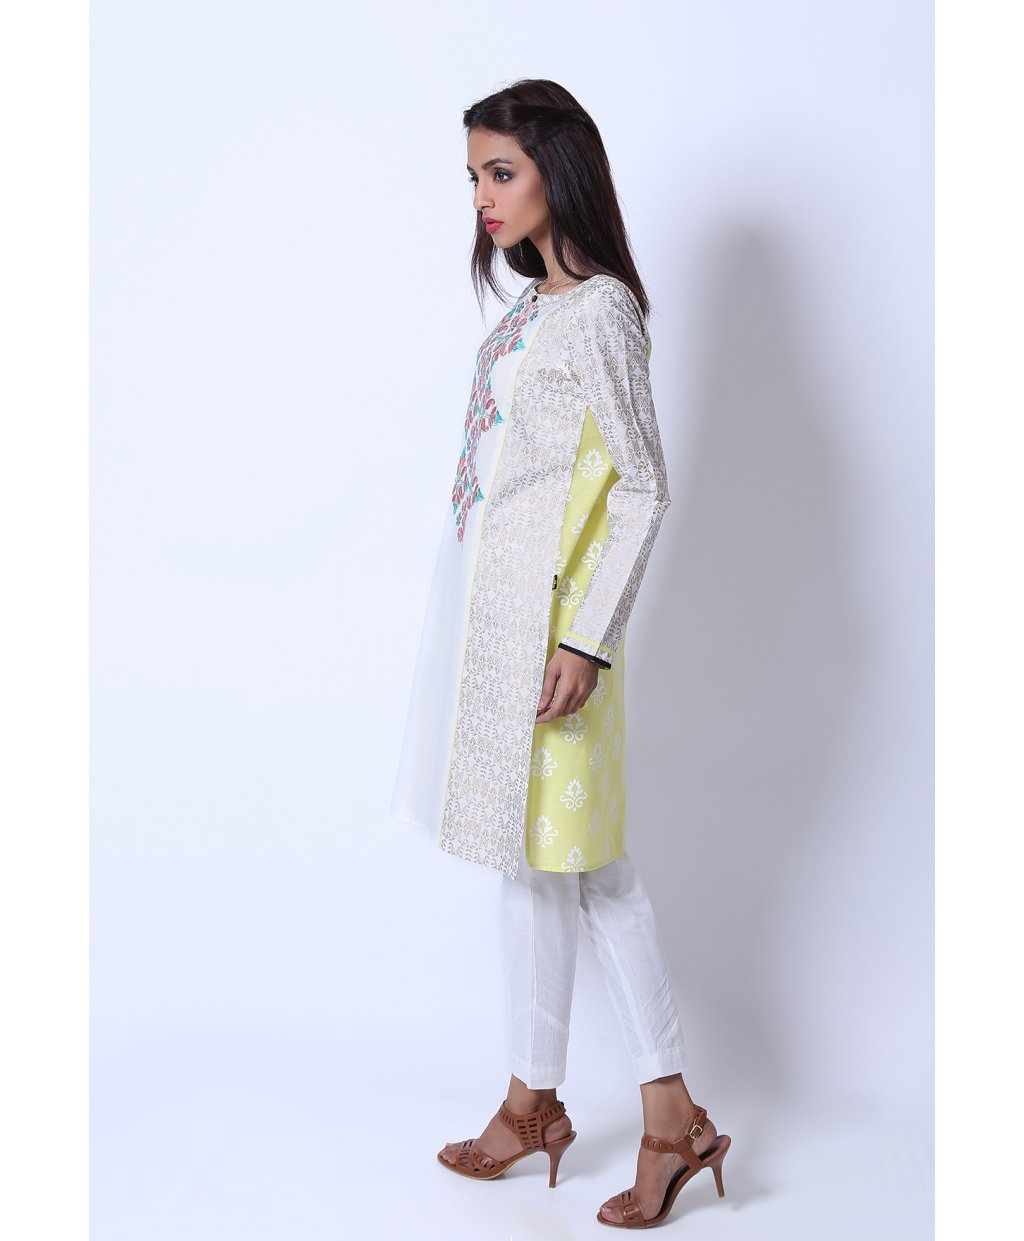 Ego Eid Dresses Collection 2016-2017 @stylesglamour (15)